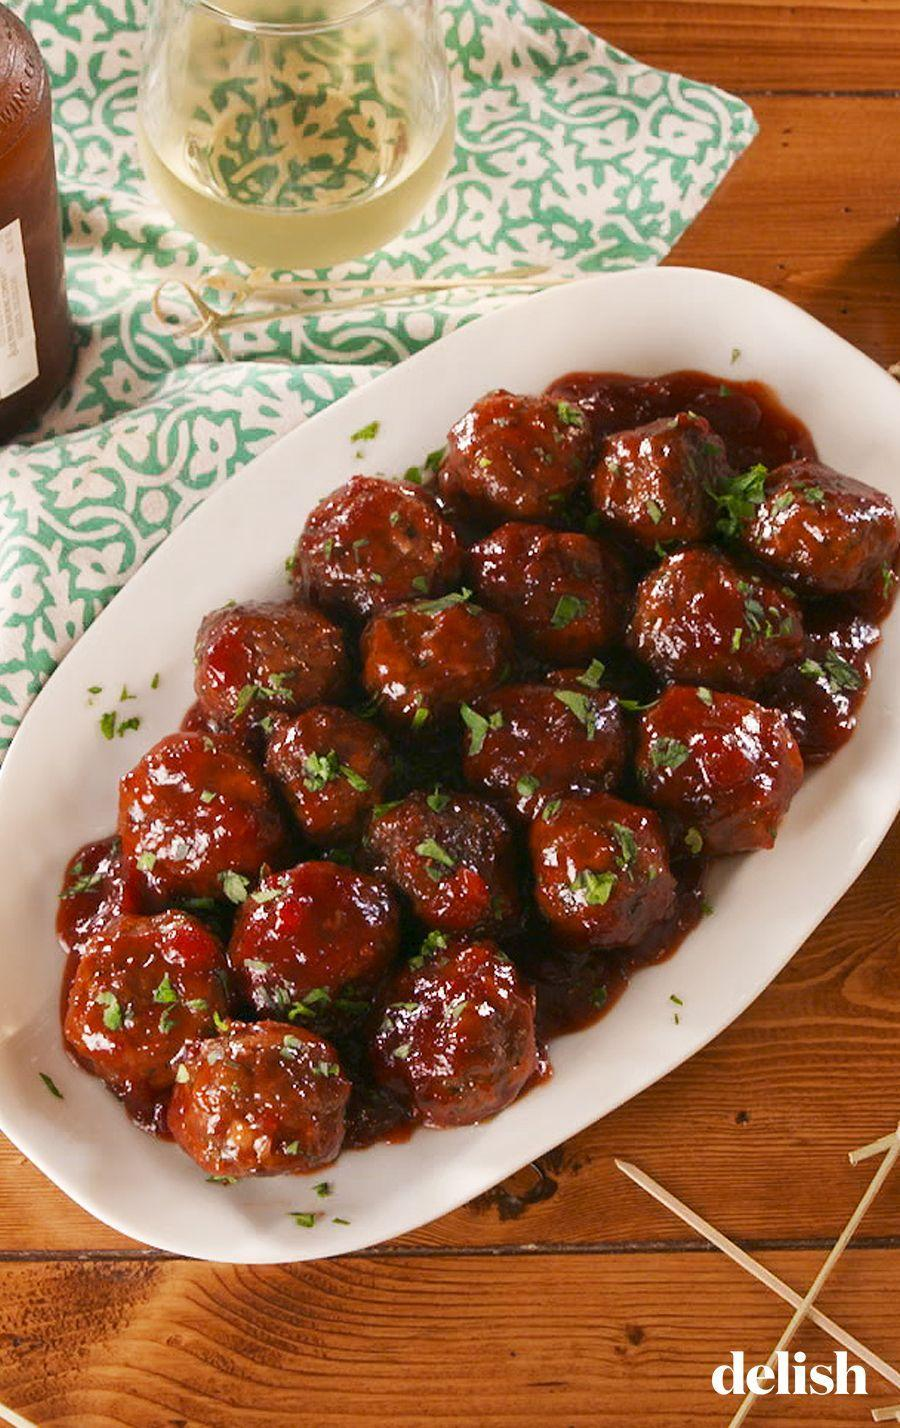 """<p>What's an app people are always excited to see? Delicious meatballs you can pop in your mouth.</p><p>Get the recipe from <a href=""""https://www.delish.com/cooking/recipe-ideas/a23694828/cocktail-meatballs/"""" rel=""""nofollow noopener"""" target=""""_blank"""" data-ylk=""""slk:Delish"""" class=""""link rapid-noclick-resp"""">Delish</a>.</p>"""